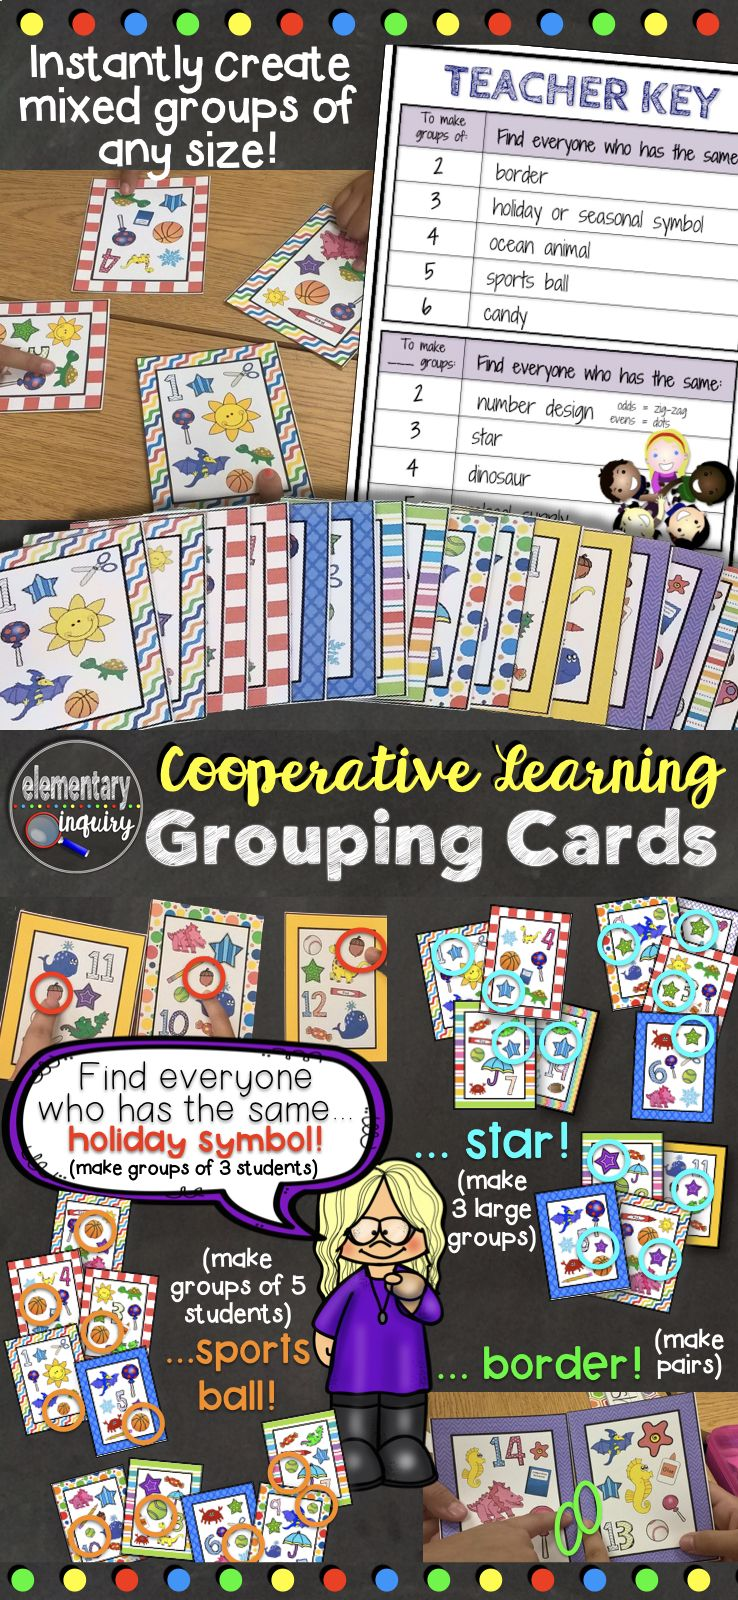 Flexible Student Grouping Cards for Cooperative Learning